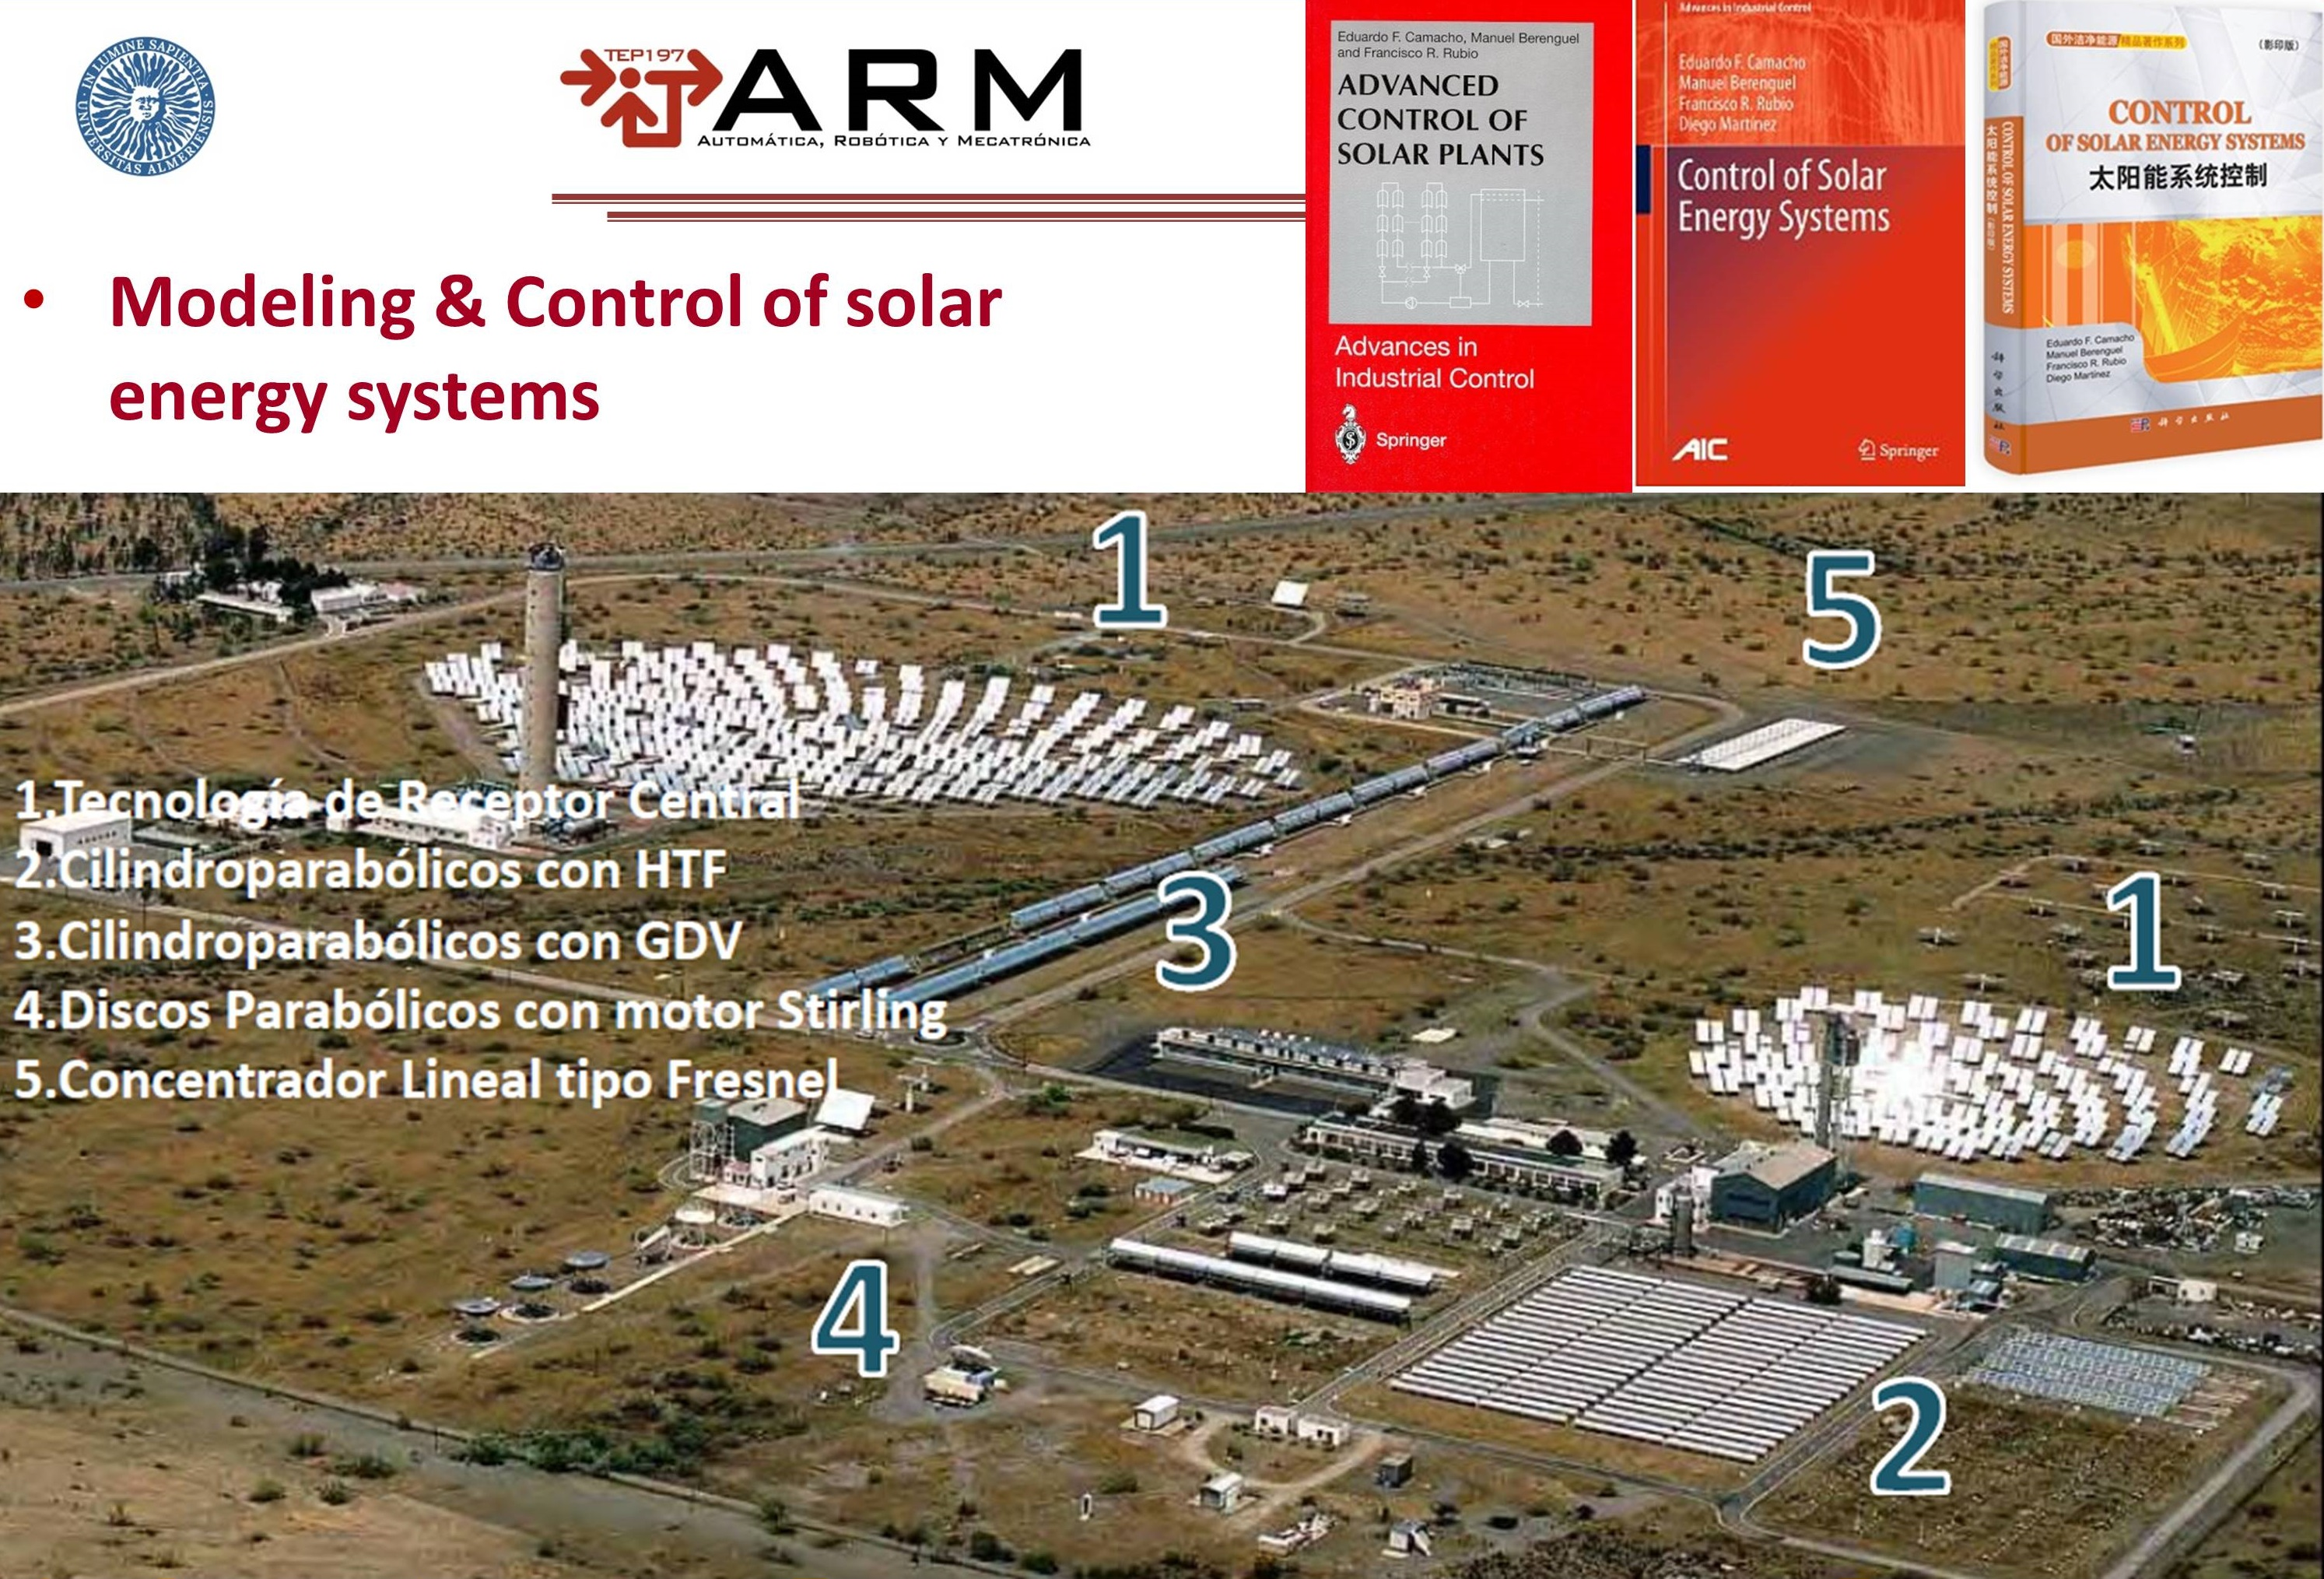 Modeling and control of solar plants